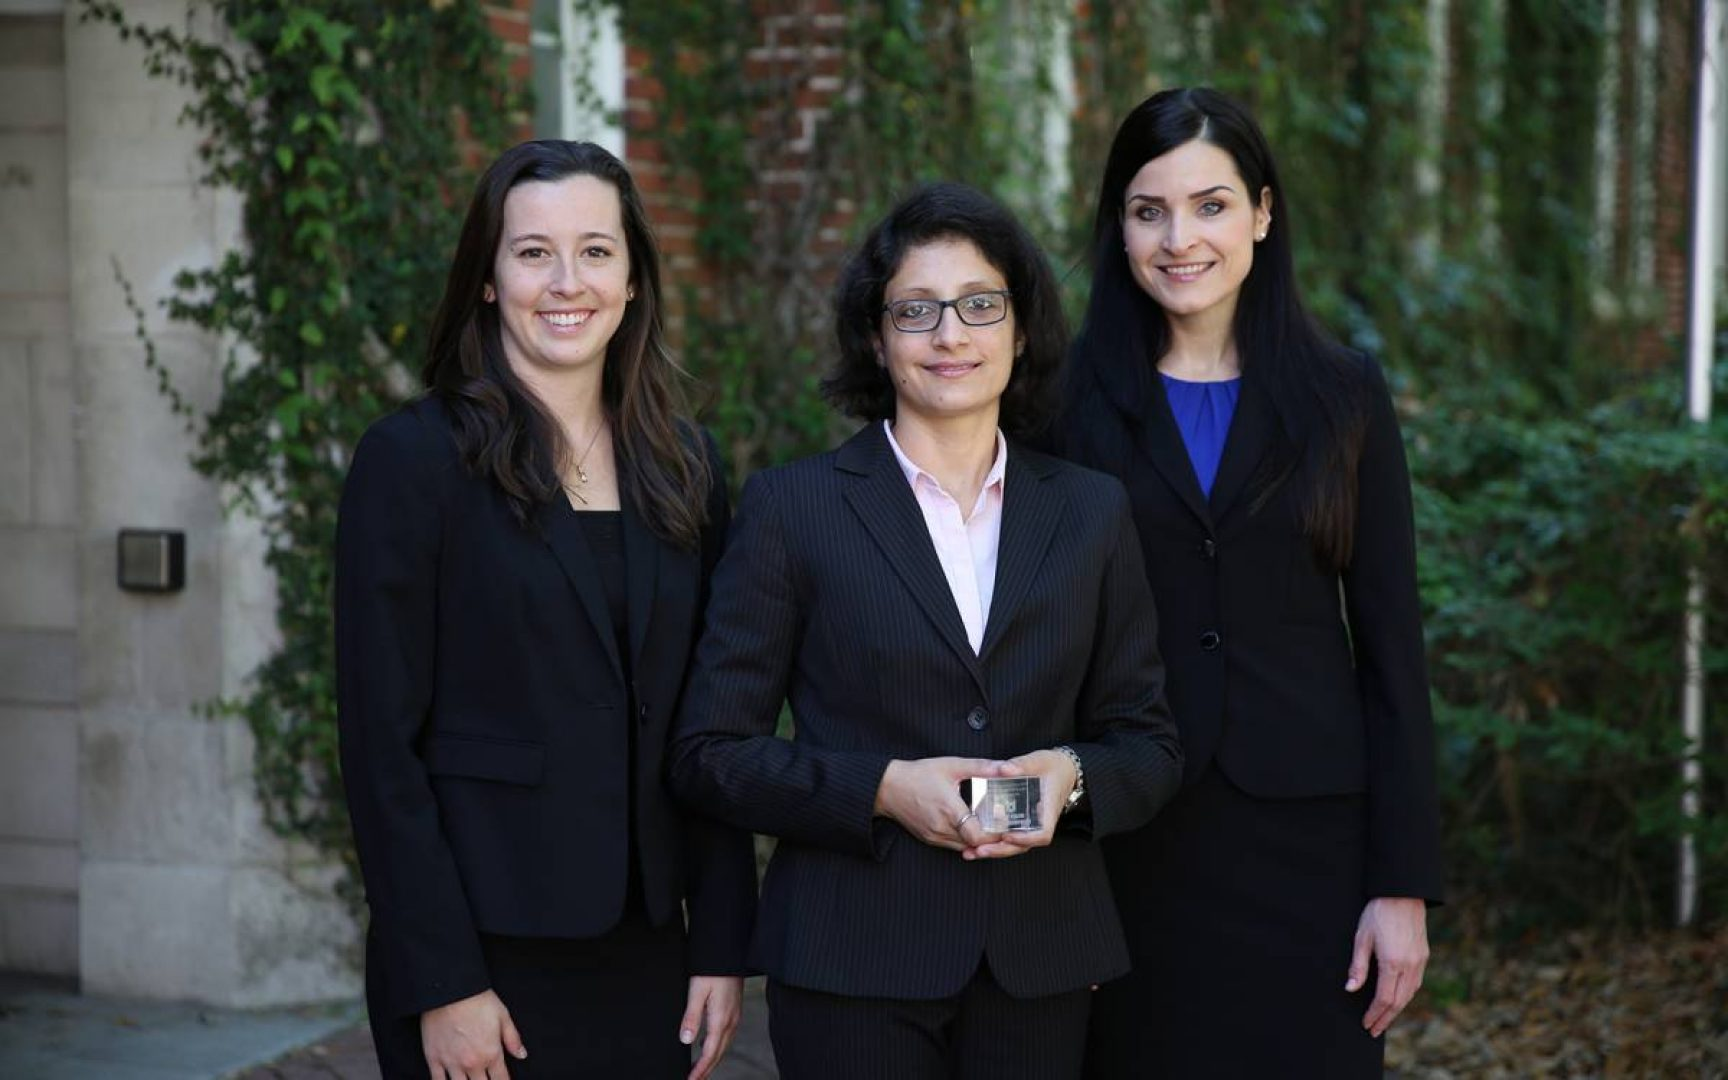 Three female students in suits pose for a photo with their trophy